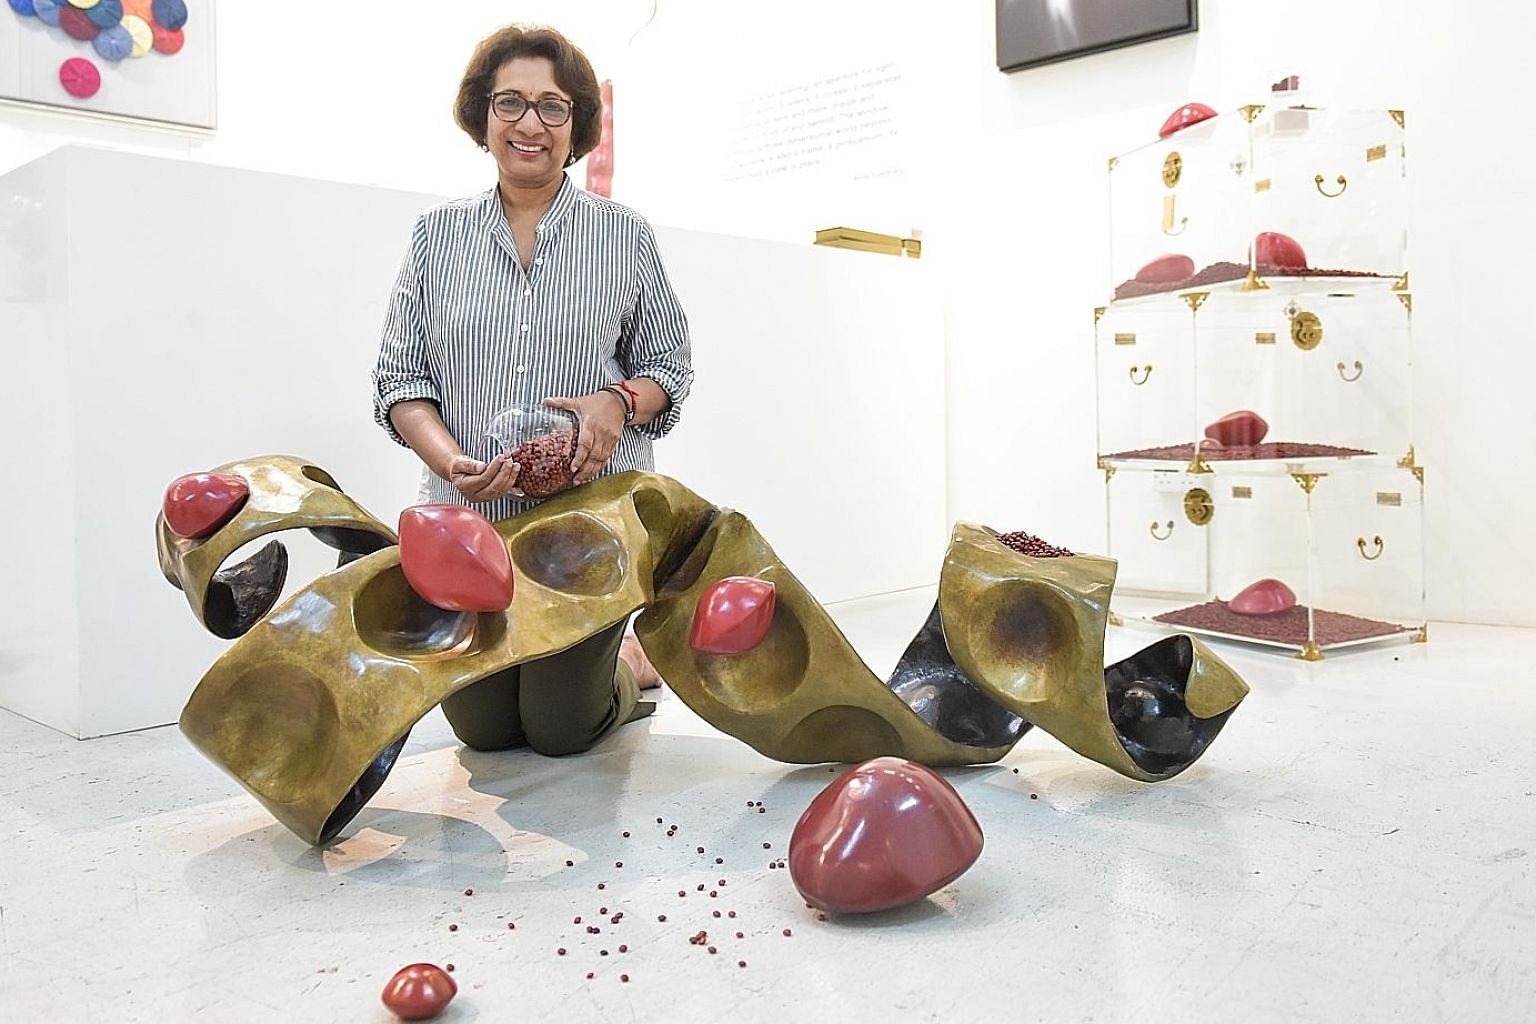 KUMARI NAHAPPAN, who has collected more than 18 million saga seeds over two decades. With her is her current work, in which a larger-than-life sculpture of an exploding saga seed pod will sit in a sea of scattered seeds